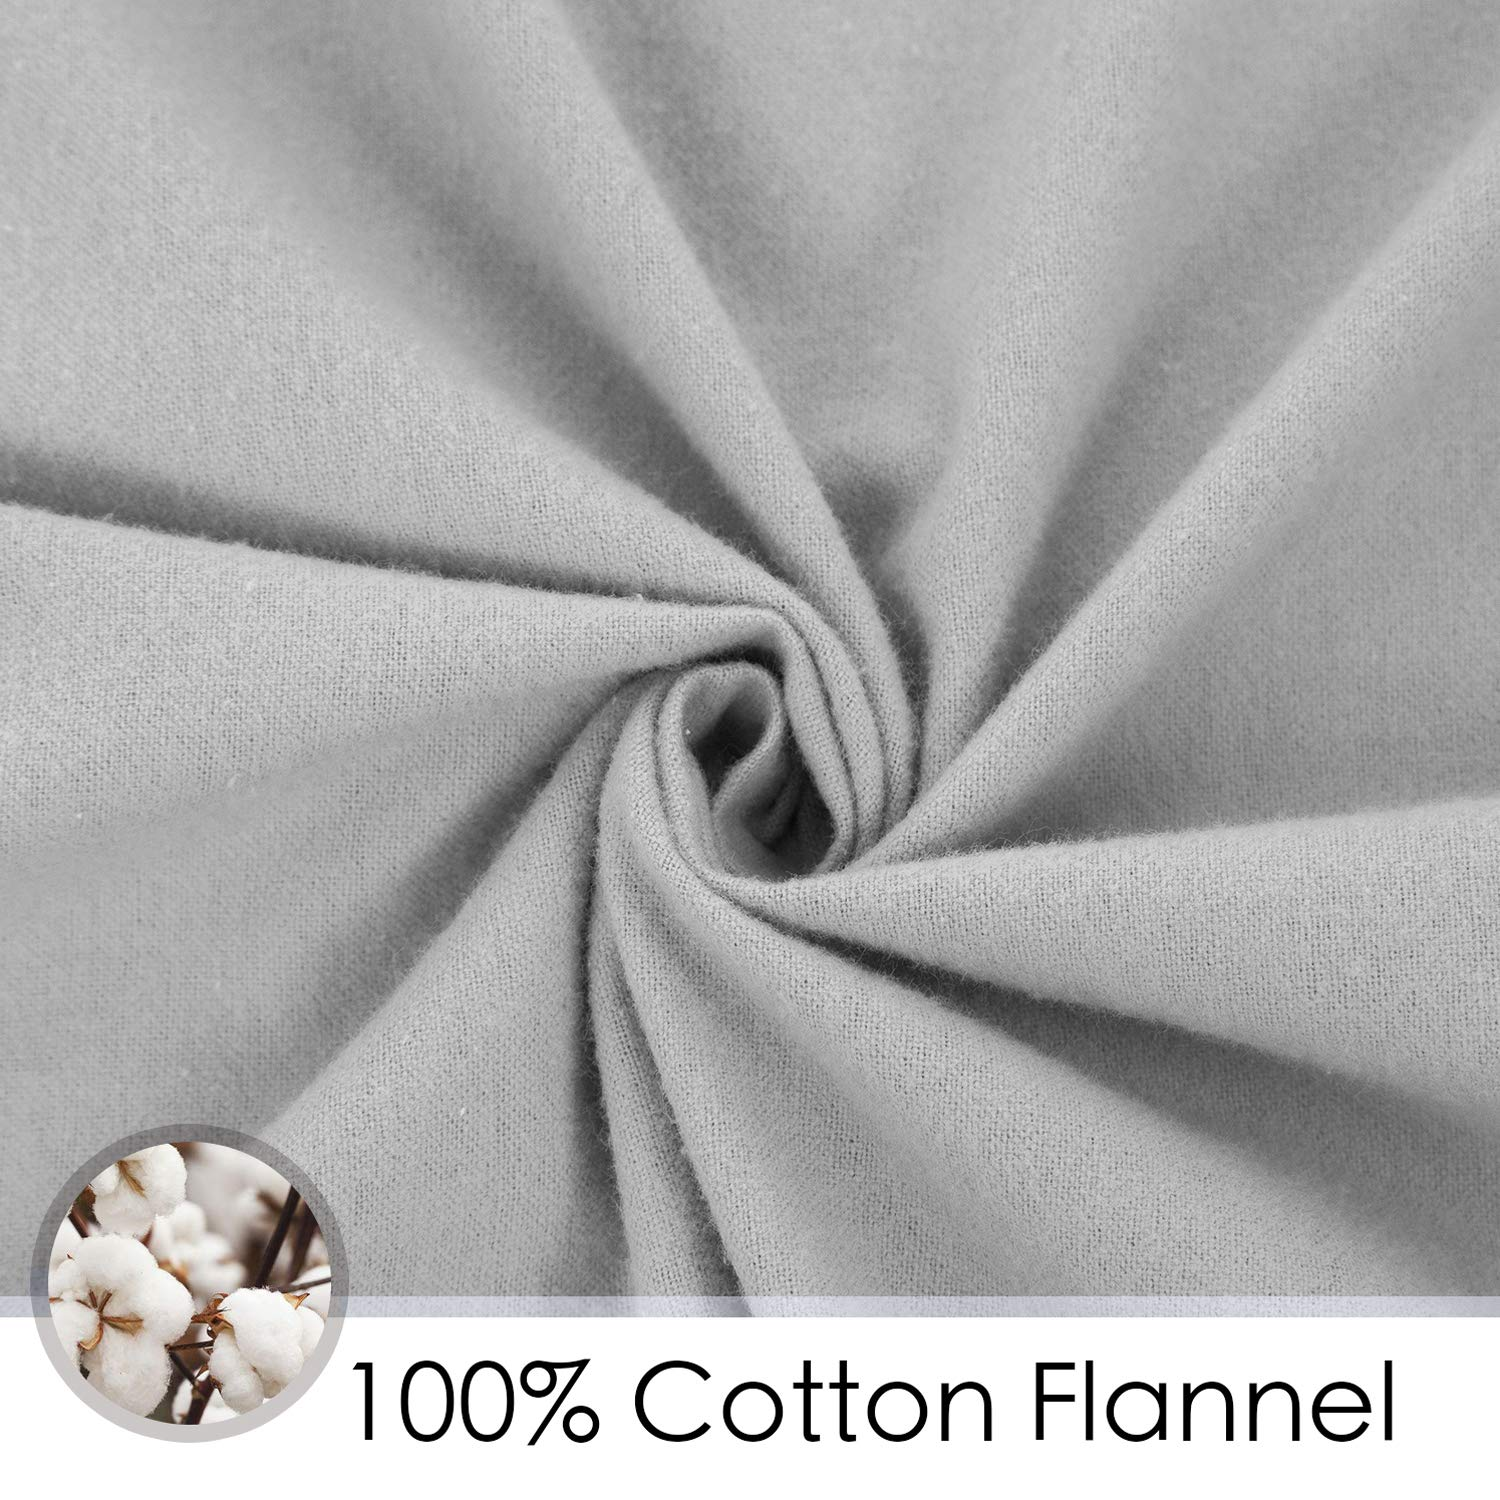 2 Piece - Cotton Flannel Crib Sheets 28 x 52in